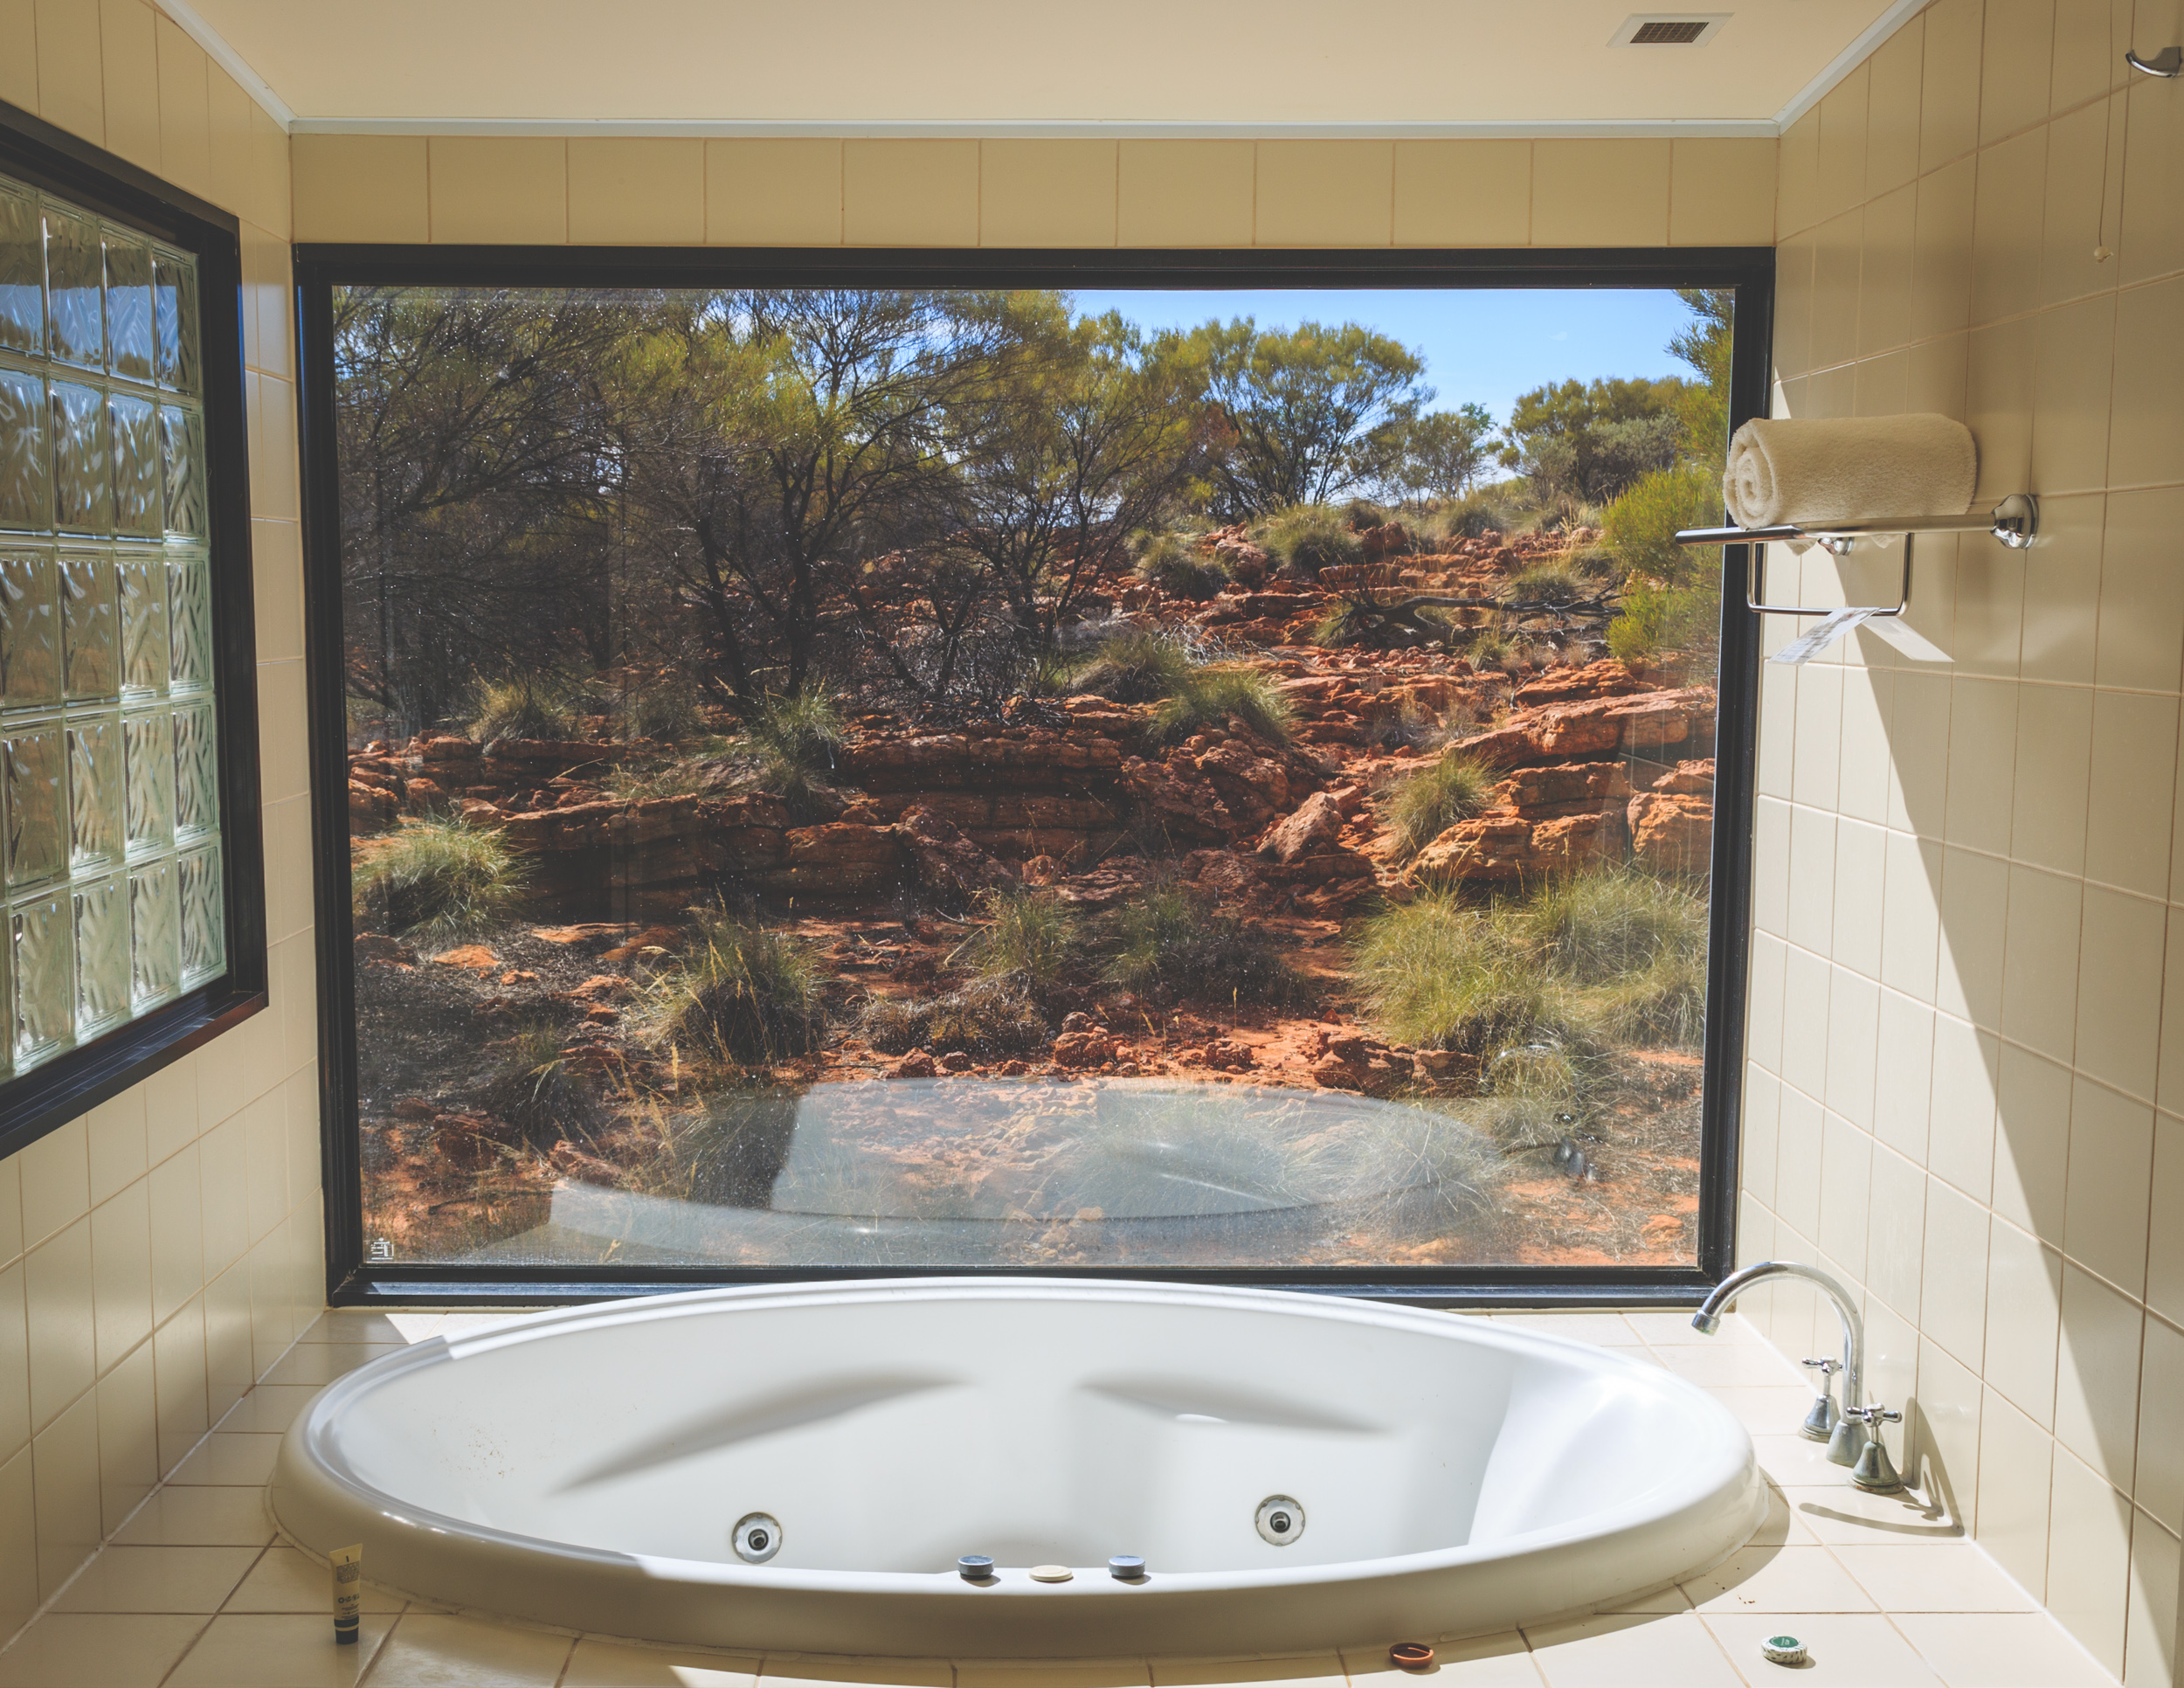 Outback Jacuzzi at Kings Canyon - Outback Itinerary